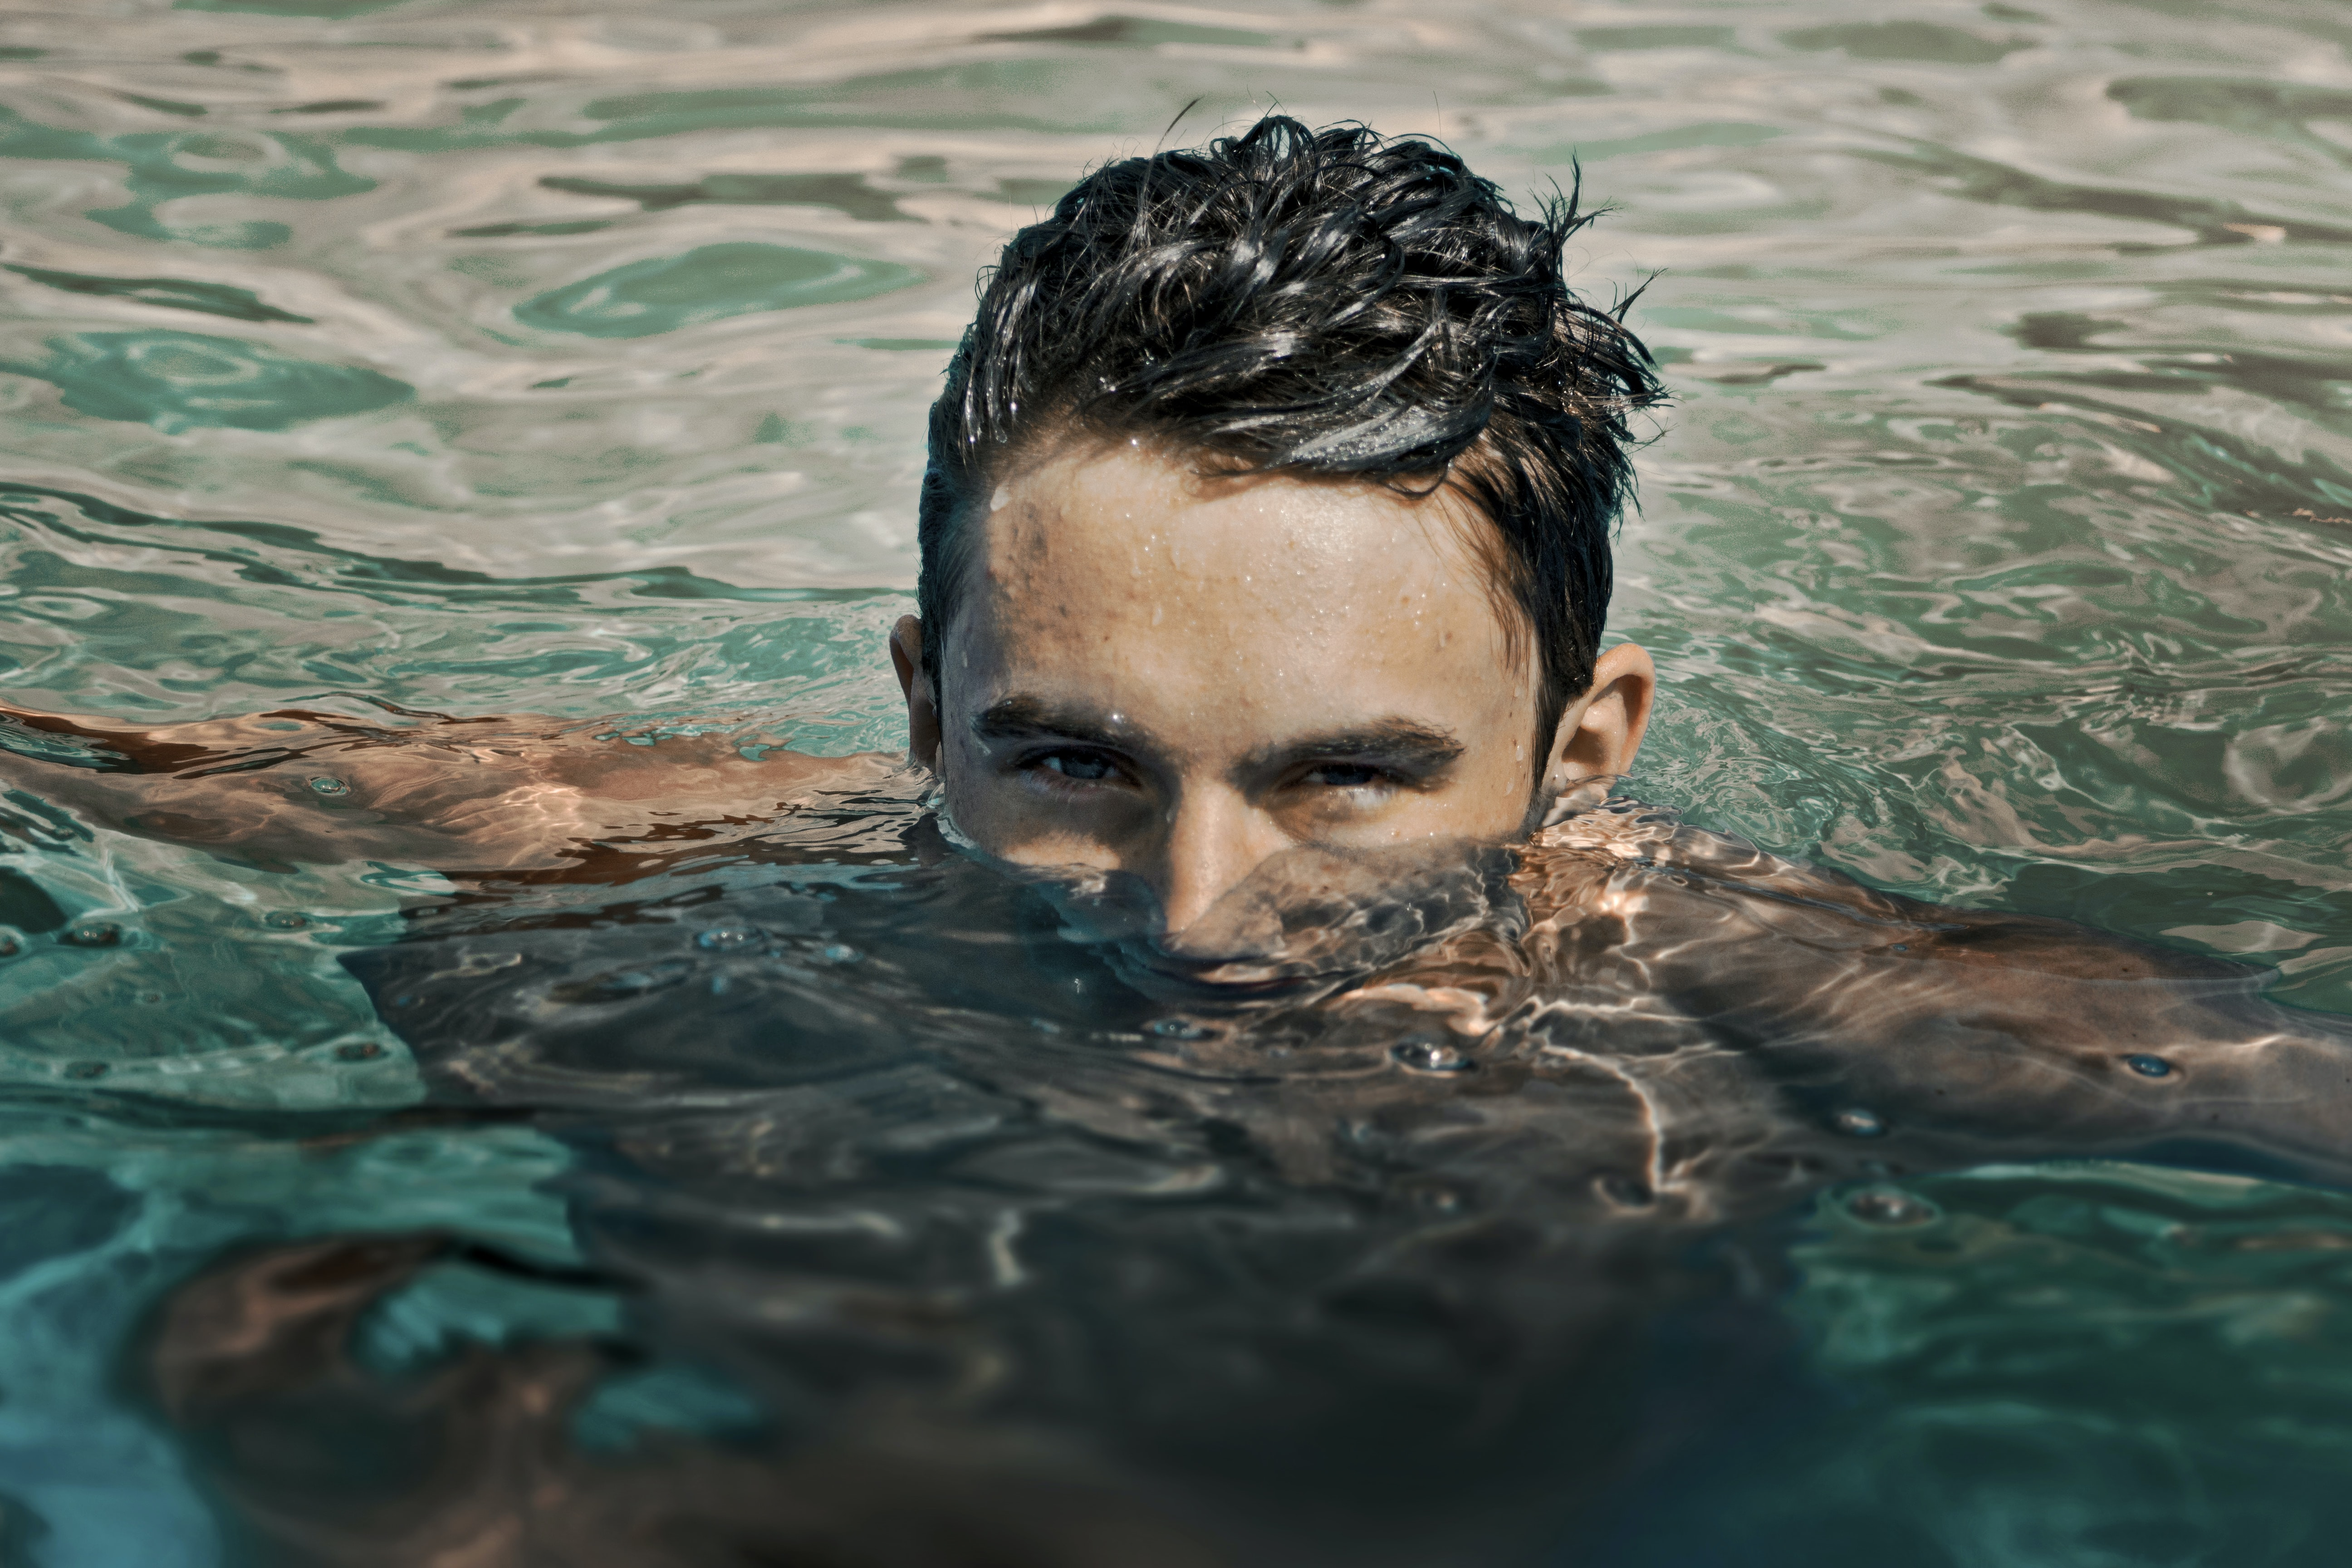 A man with wet hair and a partially submerged face in the water in Grand Rapids